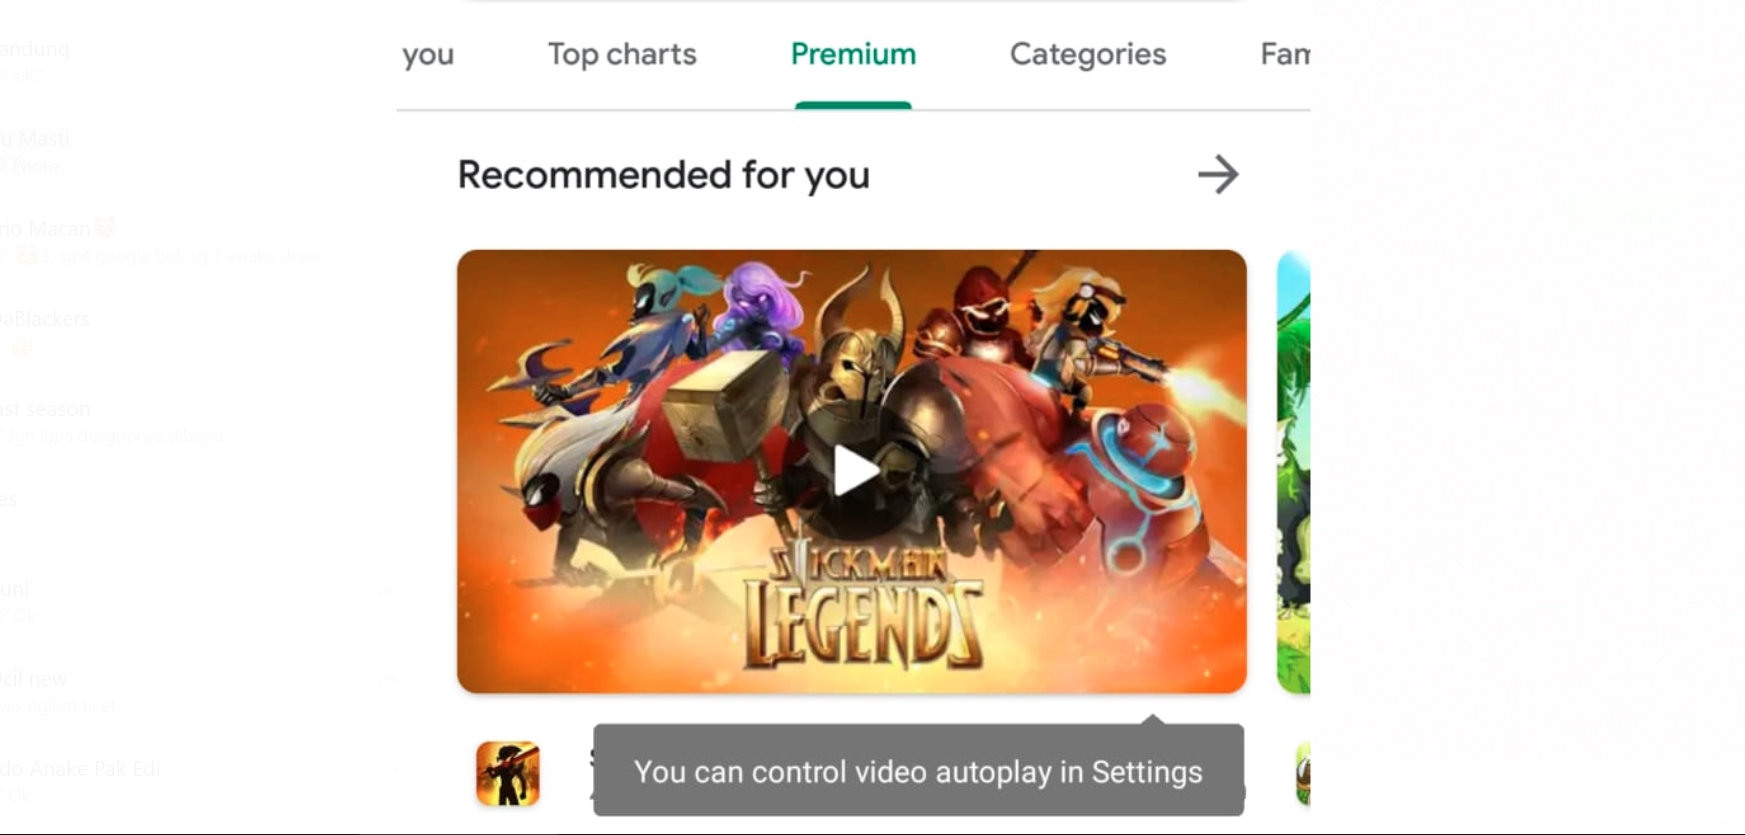 How to Disable Auto Play Video on Google Play Store